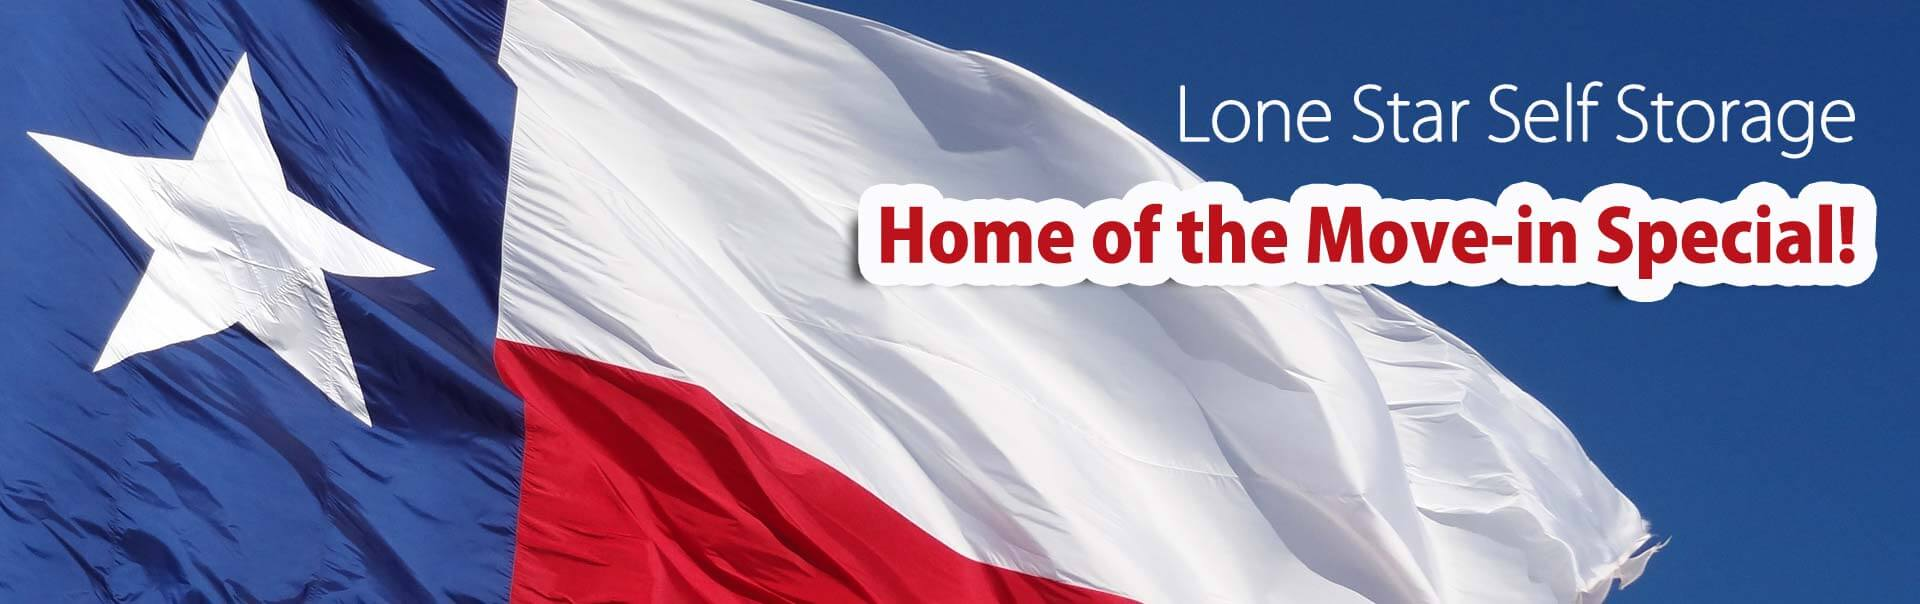 Lone Star Self Storage - Home of the move-in special